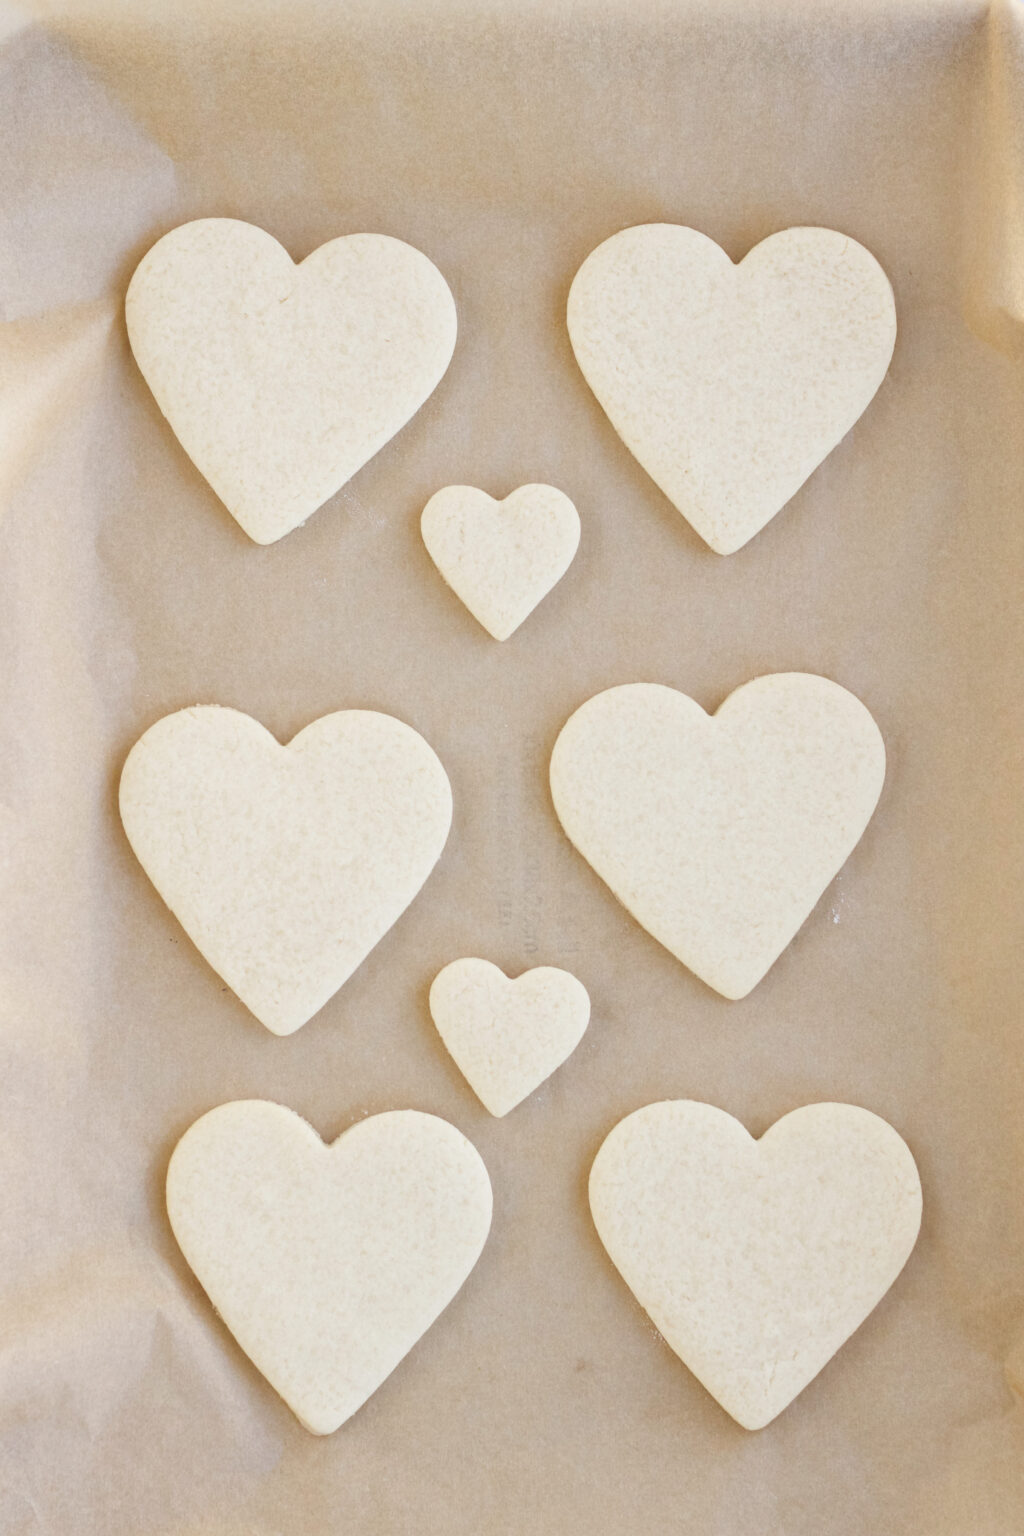 heart cookie dough on a cookie sheet